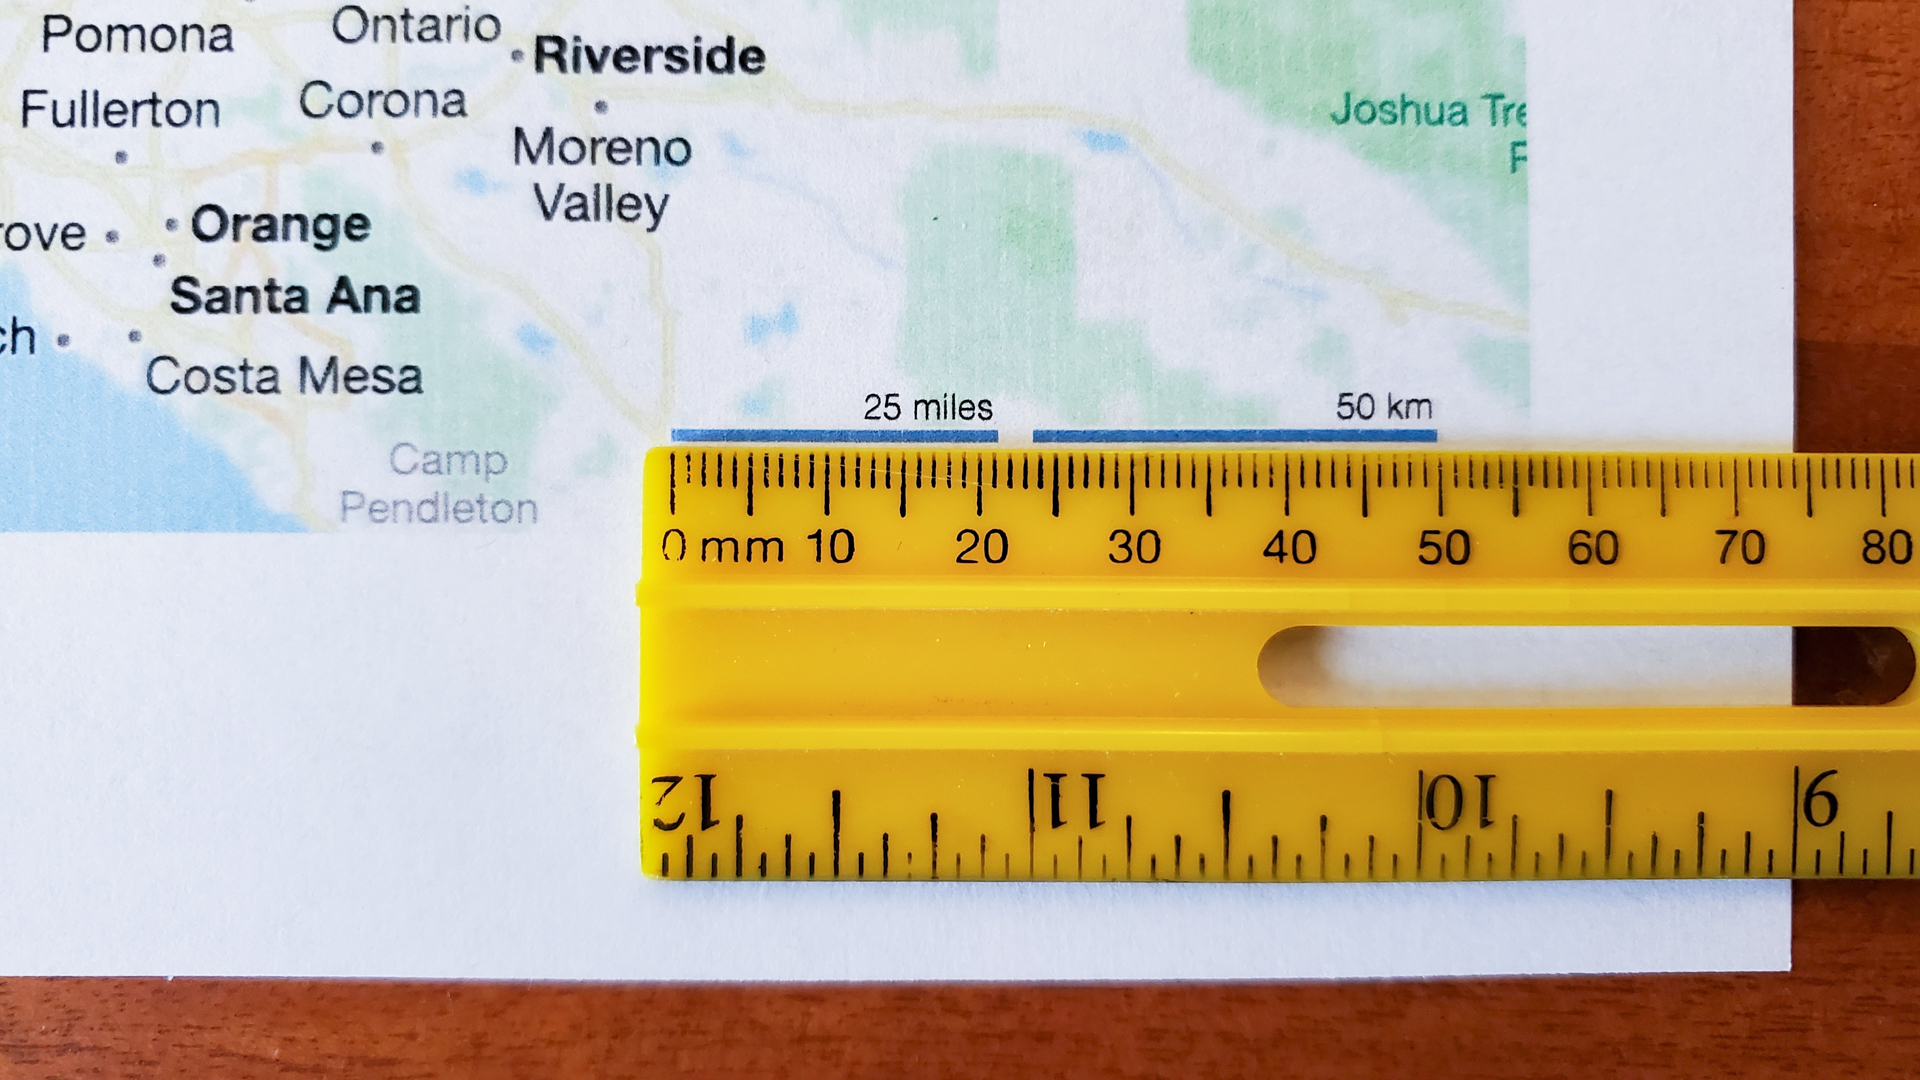 A ruler is shown beside the scale on a printed out map